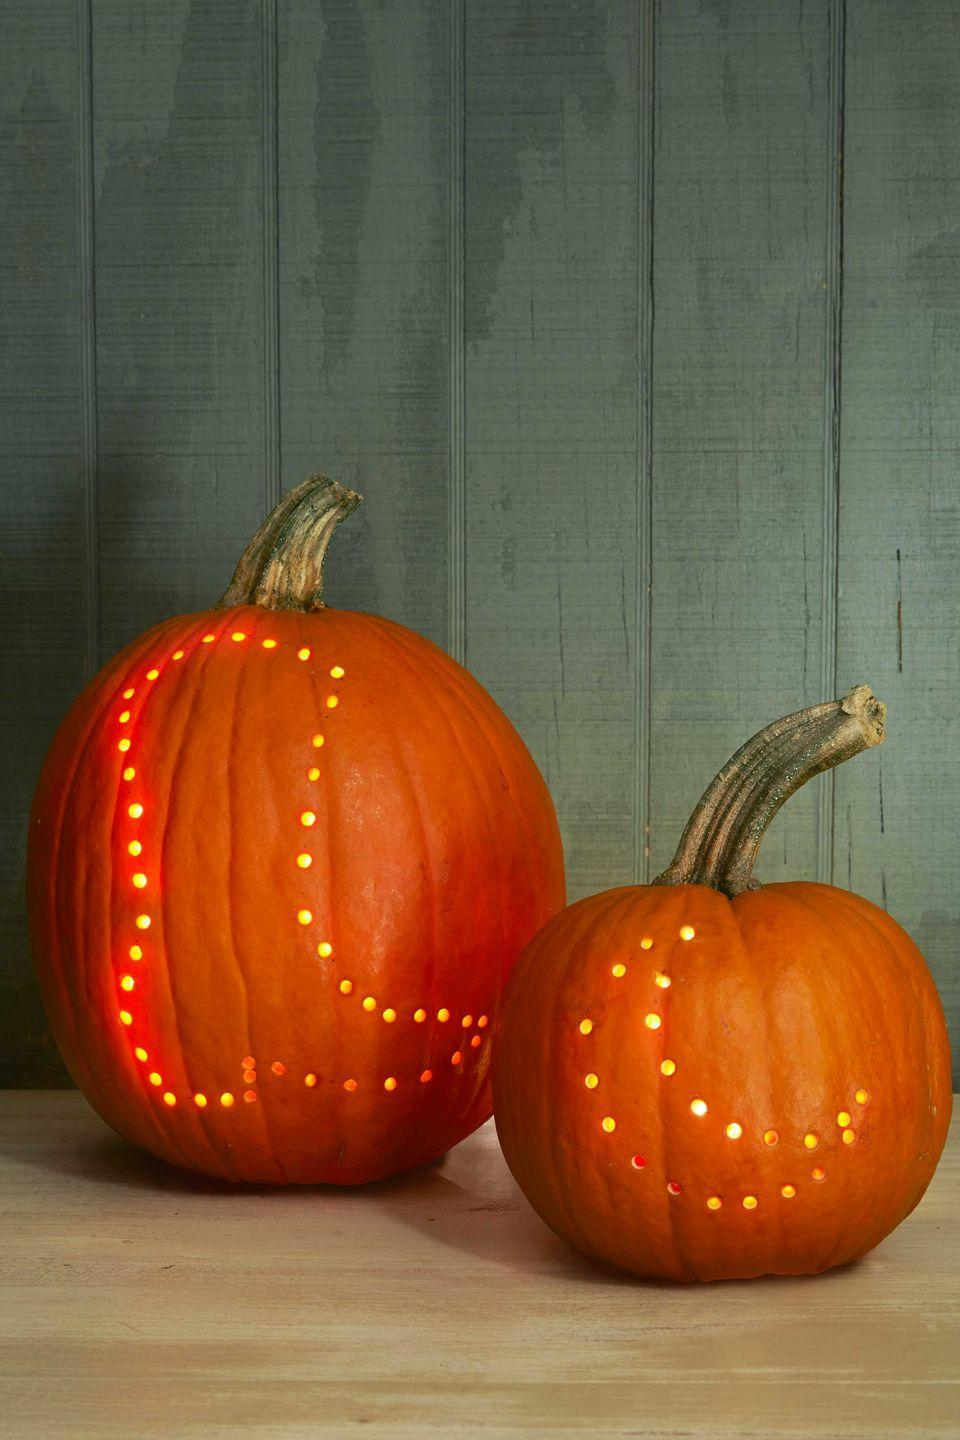 """<p>With drilled (rather than carved) pumpkins, your life is bound to be a <em>hole</em> lot easier. To make these fun designs, simply cut a hole in the bottom of a large pumpkin, then scoop out the pulp and seeds as you normally would. Next, mark your desired pattern with an erasable wax pencil. Using a medium drill bit, punch out a dotted outline of your image. Leave approximately the same amount of space between each hole, and you're good to go!</p><p><strong><a href=""""http://clv.h-cdn.co/assets/cm/15/24/5578ad543ea0b_-_Pumpkins.pdf"""" rel=""""nofollow noopener"""" target=""""_blank"""" data-ylk=""""slk:Get the template."""" class=""""link rapid-noclick-resp"""">Get the template.</a> </strong> </p>"""